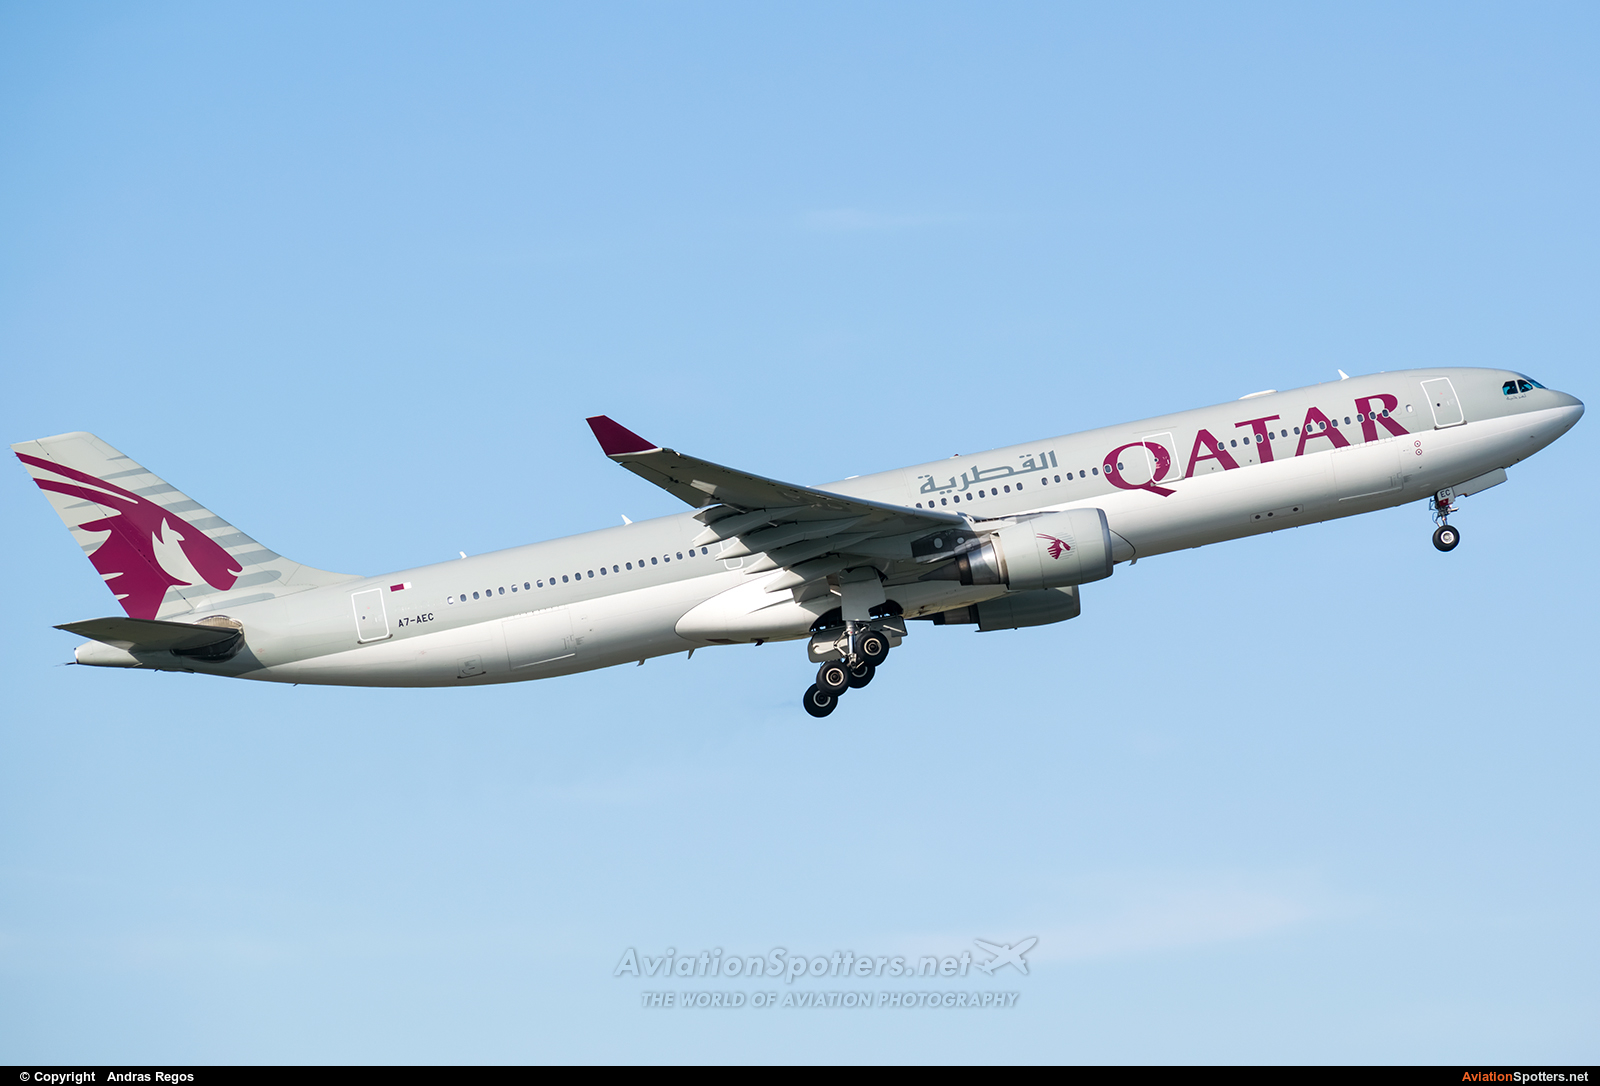 Qatar Airways  -  A330-300  (A7-AEC) By Andras Regos (regos)